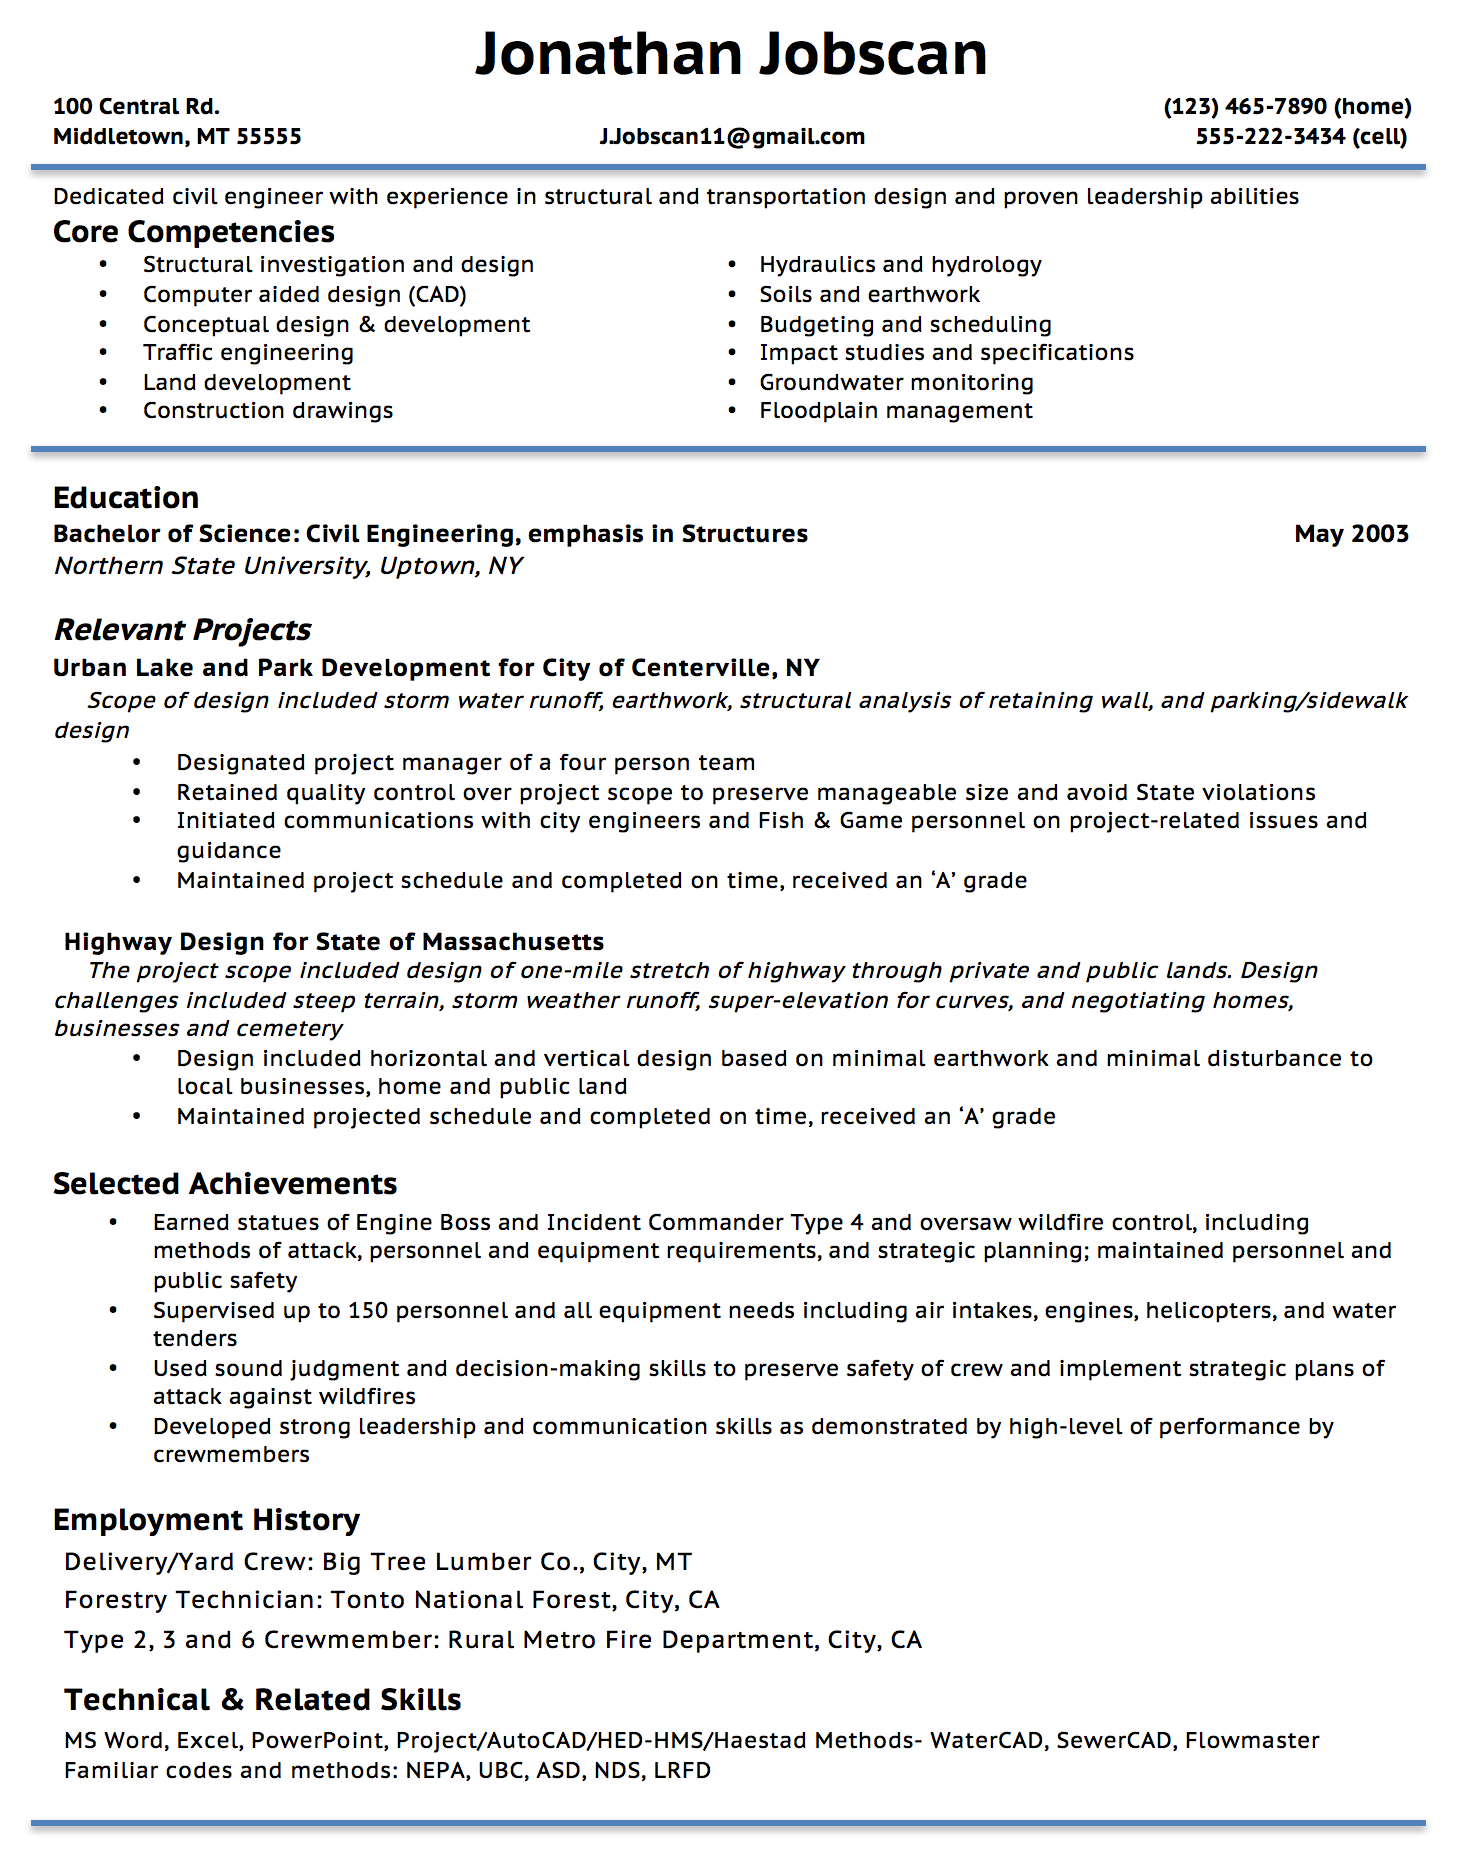 Opposenewapstandardsus  Wonderful Resume Writing Guide  Jobscan With Gorgeous Example Of A Functional Resume Format With Cool Do Resumes Need Objectives Also Field Service Resume In Addition Sales Representative Resume Examples And Resume For Promotion Within Same Company As Well As Manufacturing Resumes Additionally Free Resume Helper From Jobscanco With Opposenewapstandardsus  Gorgeous Resume Writing Guide  Jobscan With Cool Example Of A Functional Resume Format And Wonderful Do Resumes Need Objectives Also Field Service Resume In Addition Sales Representative Resume Examples From Jobscanco